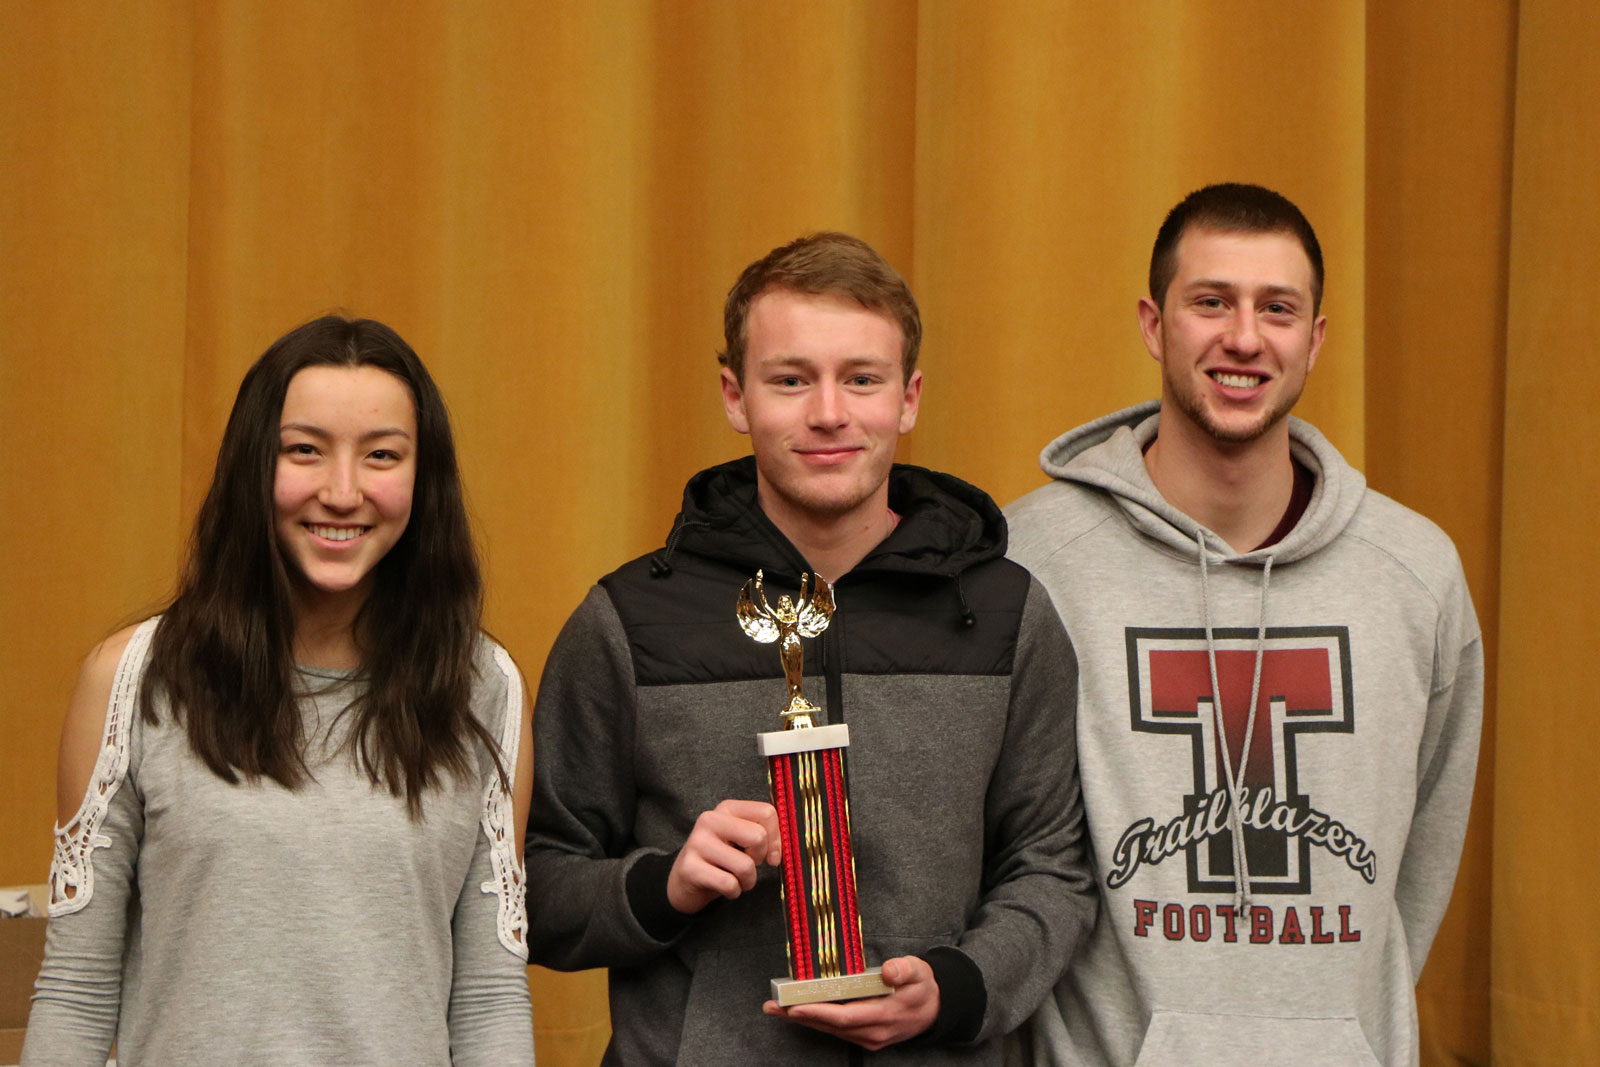 Top School Torrington High School for grades 11 and 12 - Left to right: Emi Glass, Ethan Creagar, Ryan Johnson total scores of 1,360